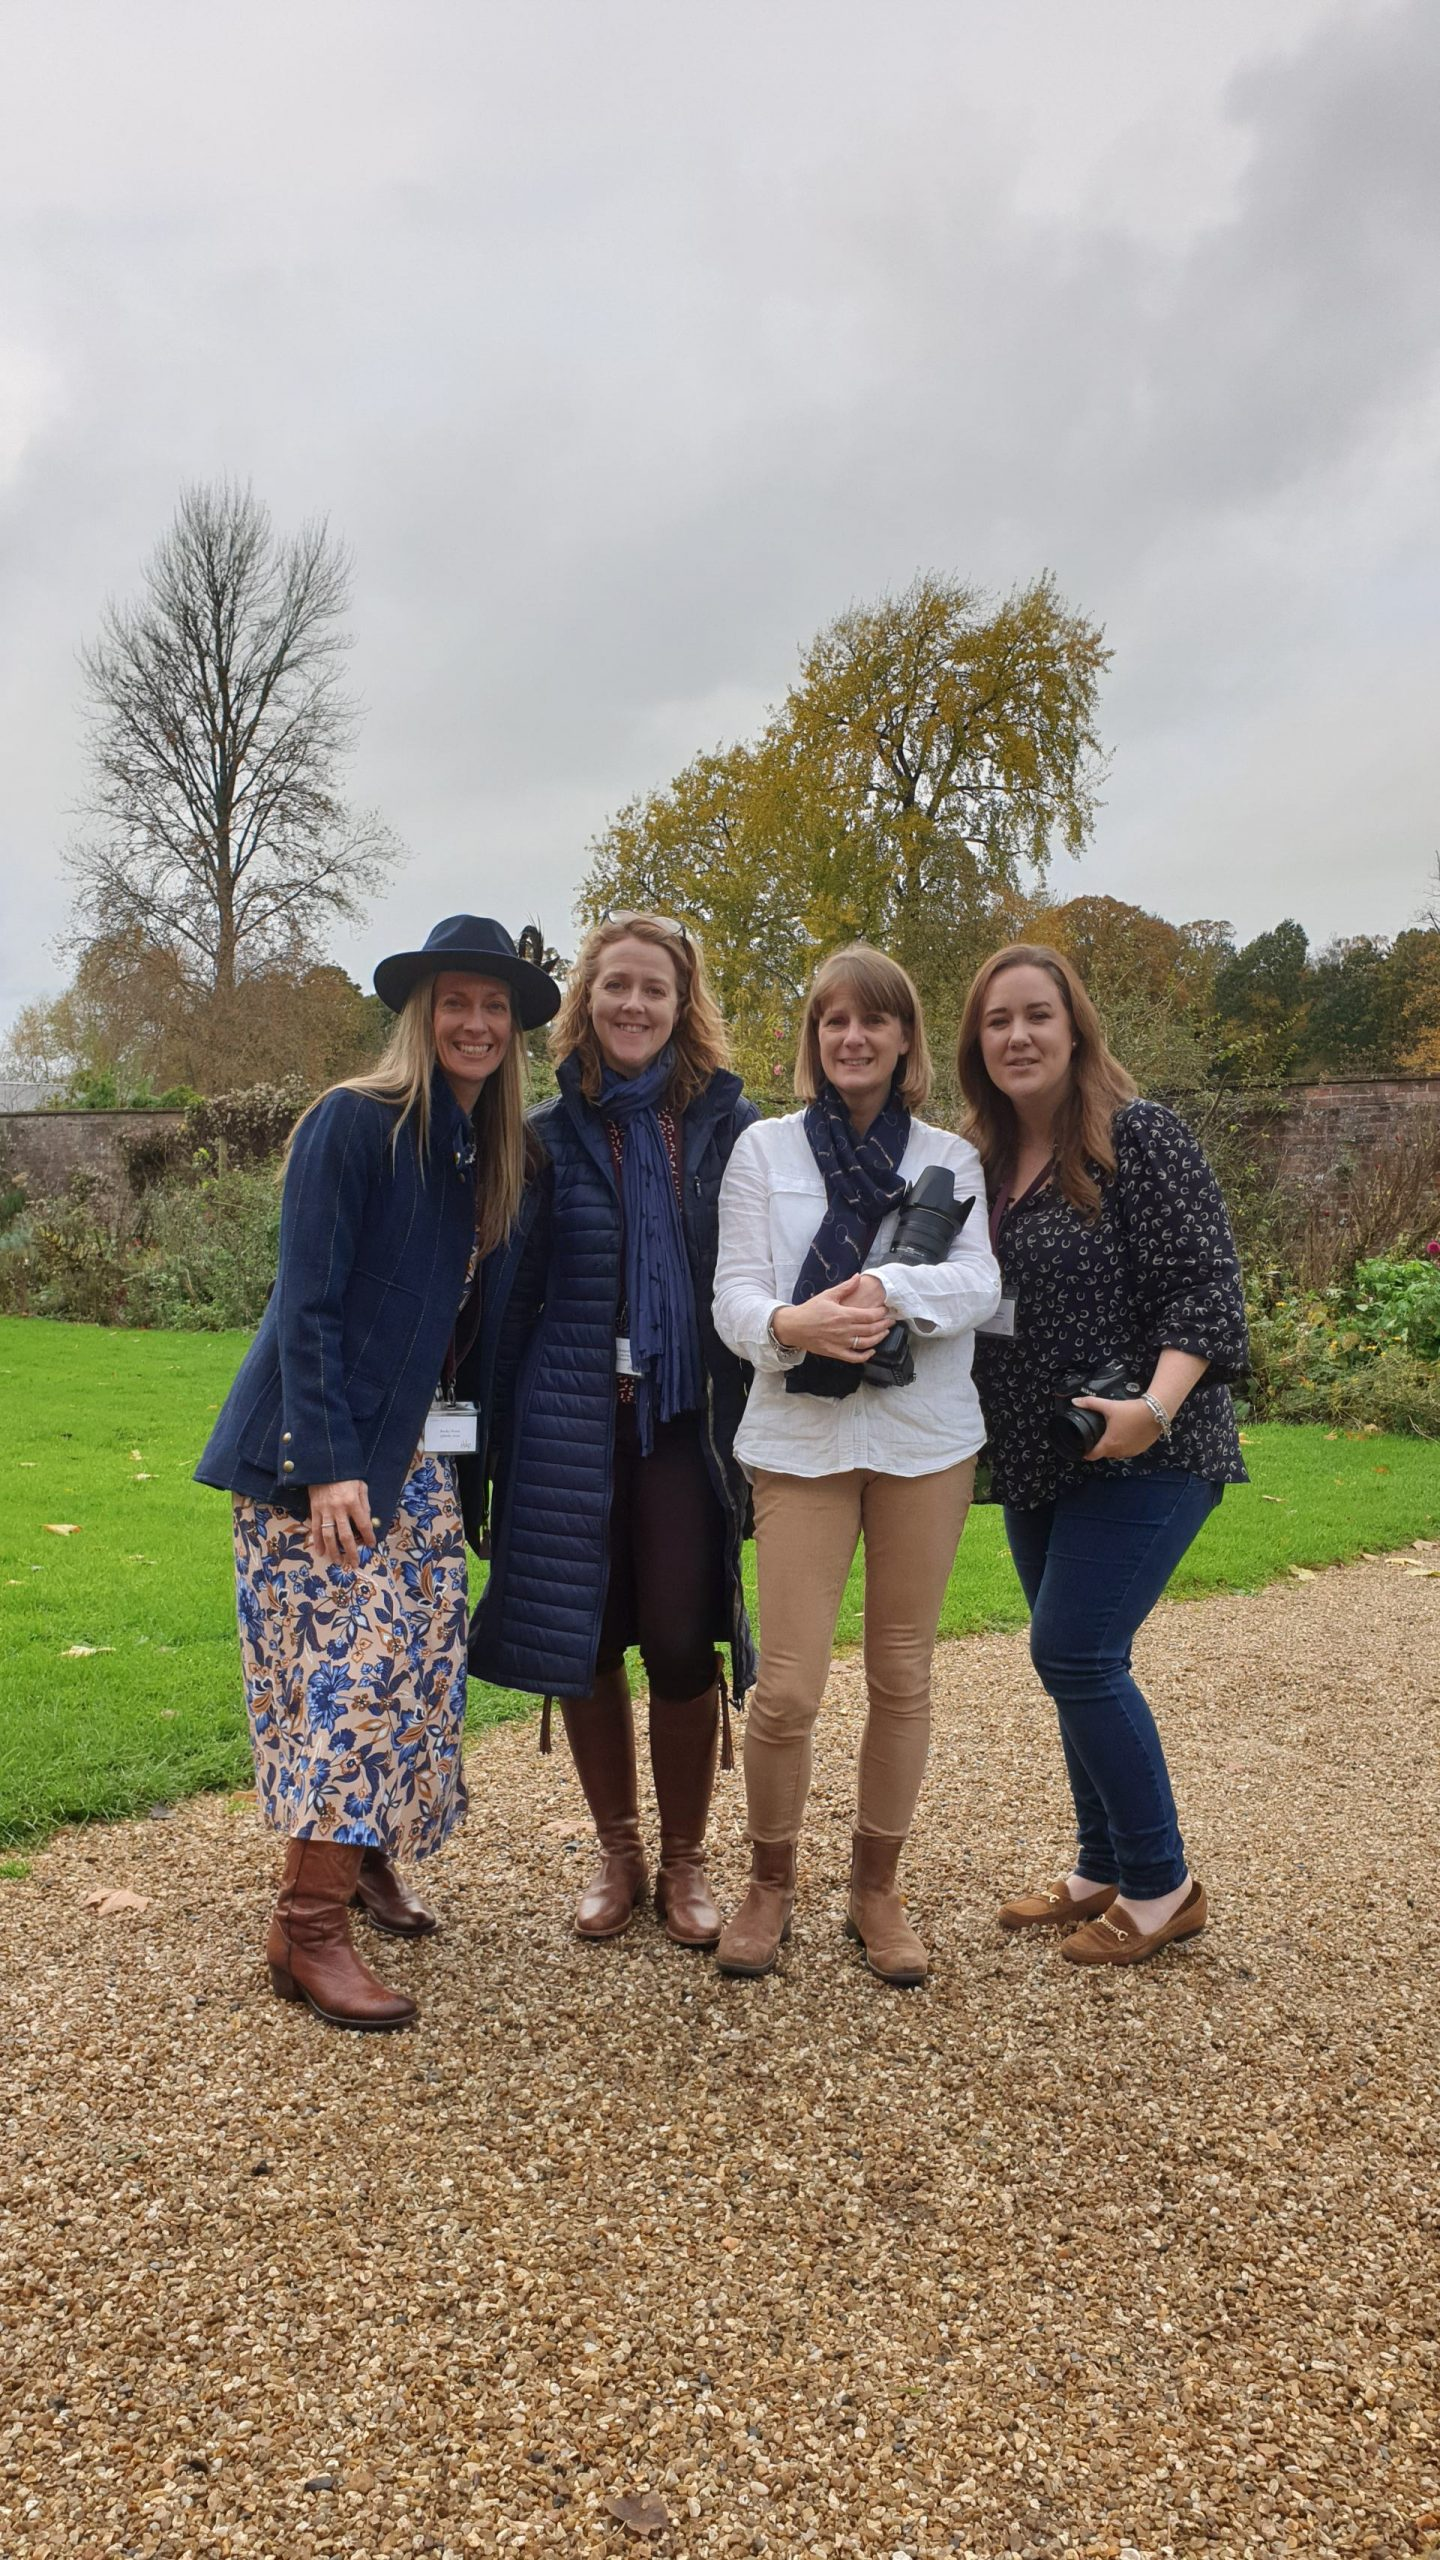 Becky, Ruth Chappell, Rachel Bragg and Sophie Callahan